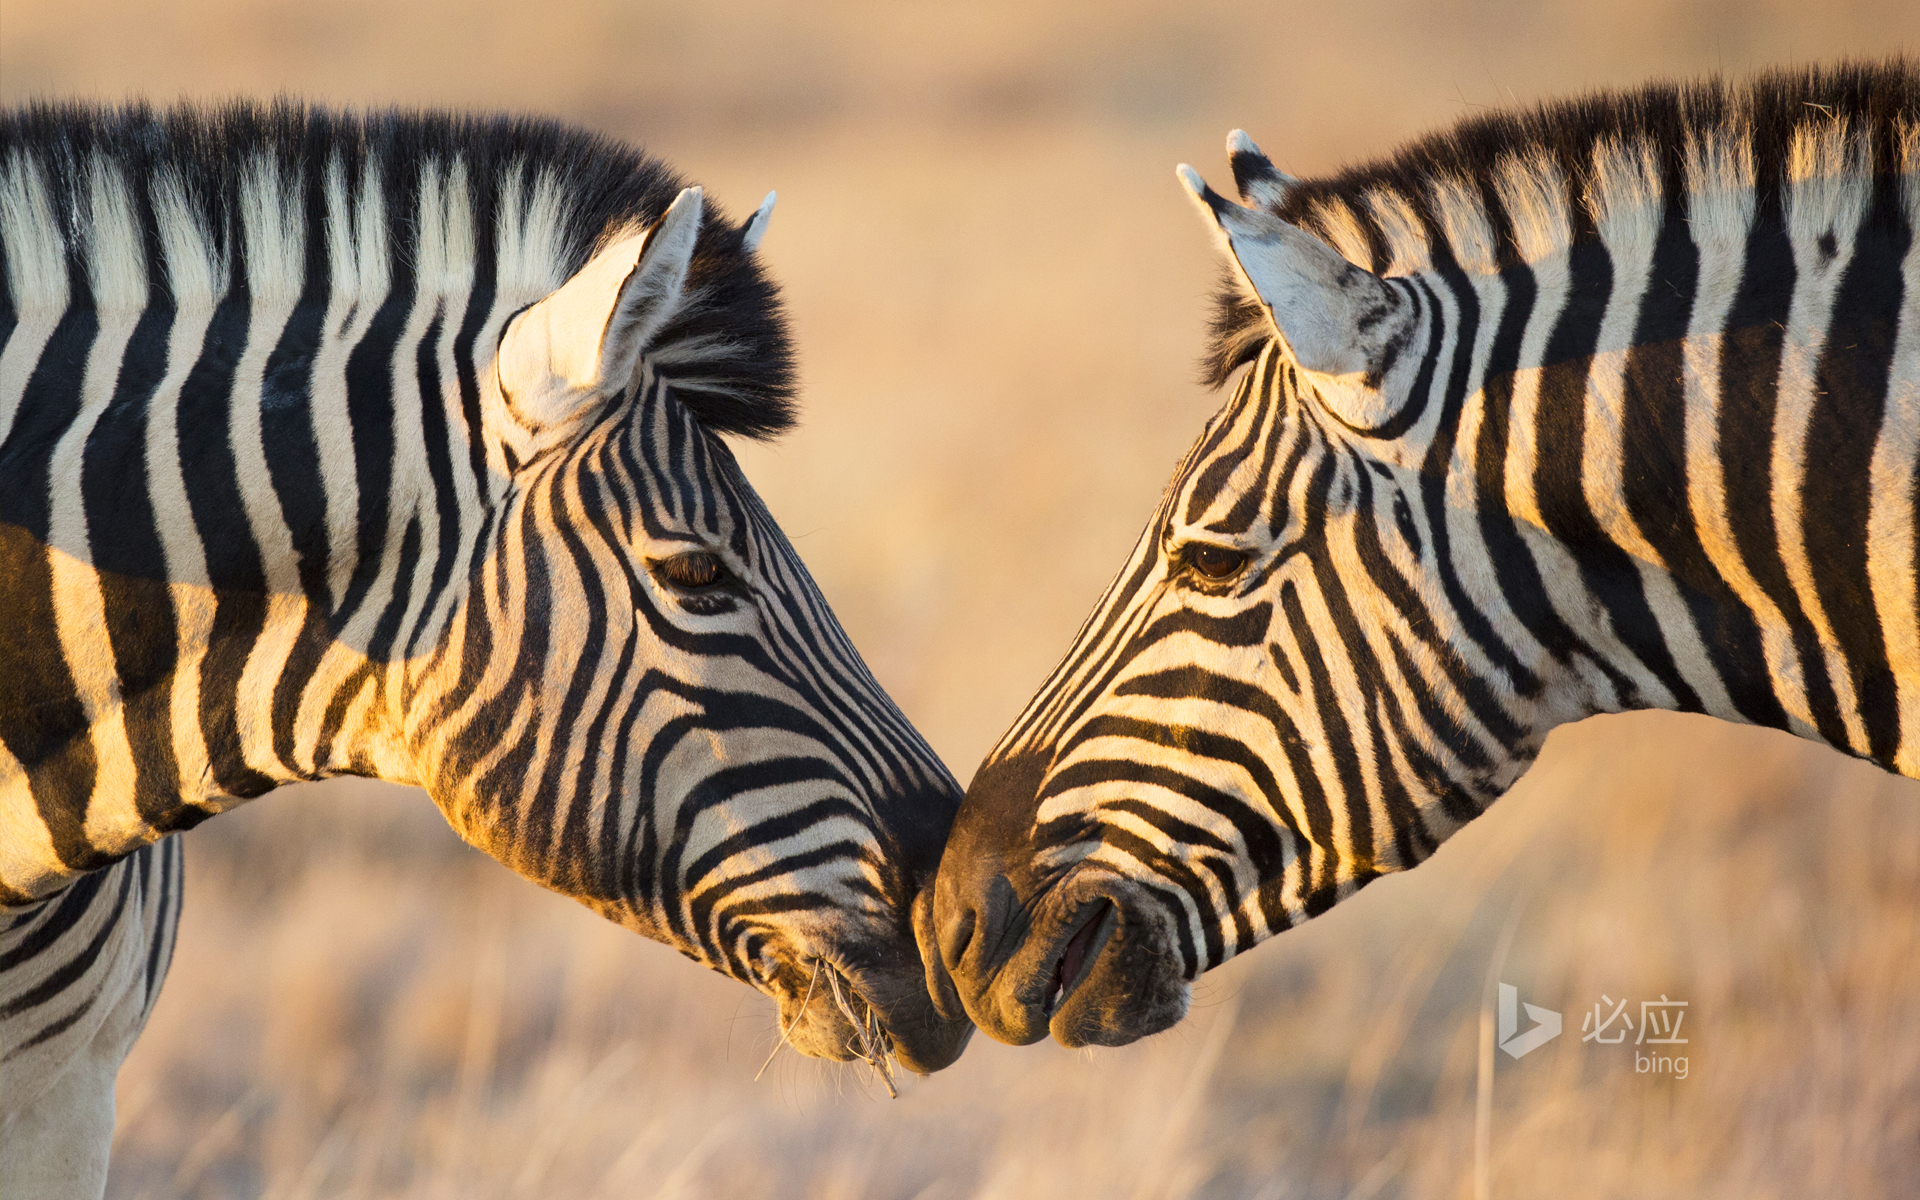 Plains Zebras greeting each other, Etosha National Park, Namibia